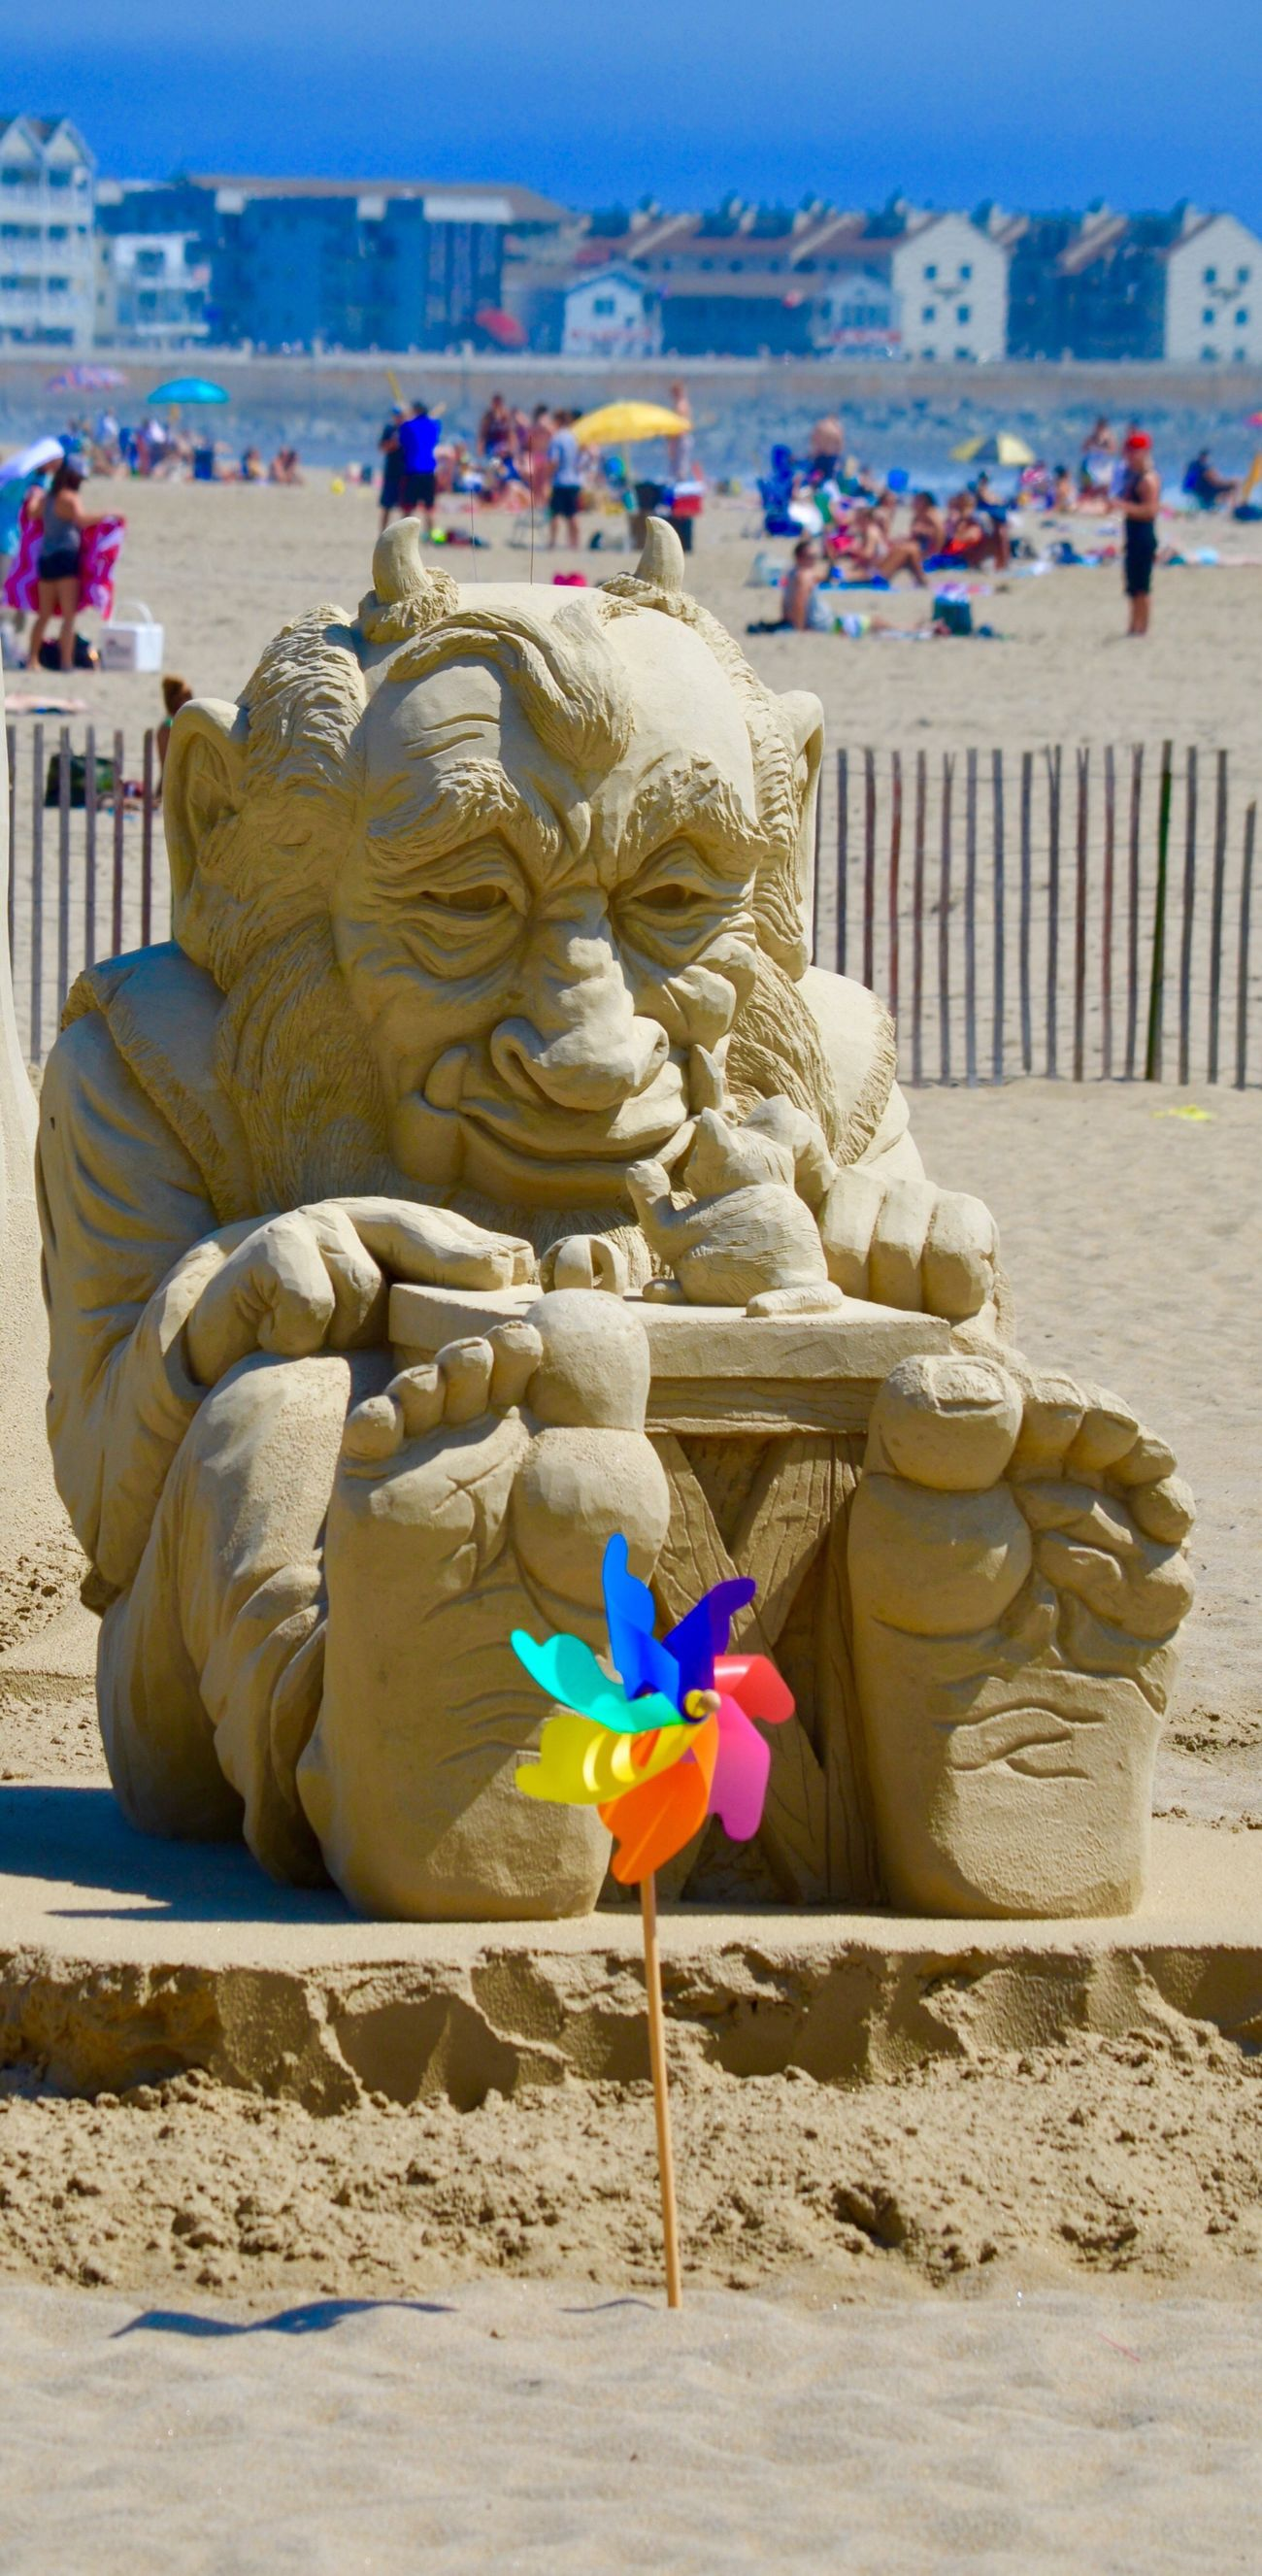 Sand castle competition☀️ Sculpture Travel Destinations Outdoors Beach Statue Sand Sky Close-up Beach Life Pinwheel Feet Sea Barefoot Beach Fun Digging In Sand Contest Ocean Photography Sandcastle Building